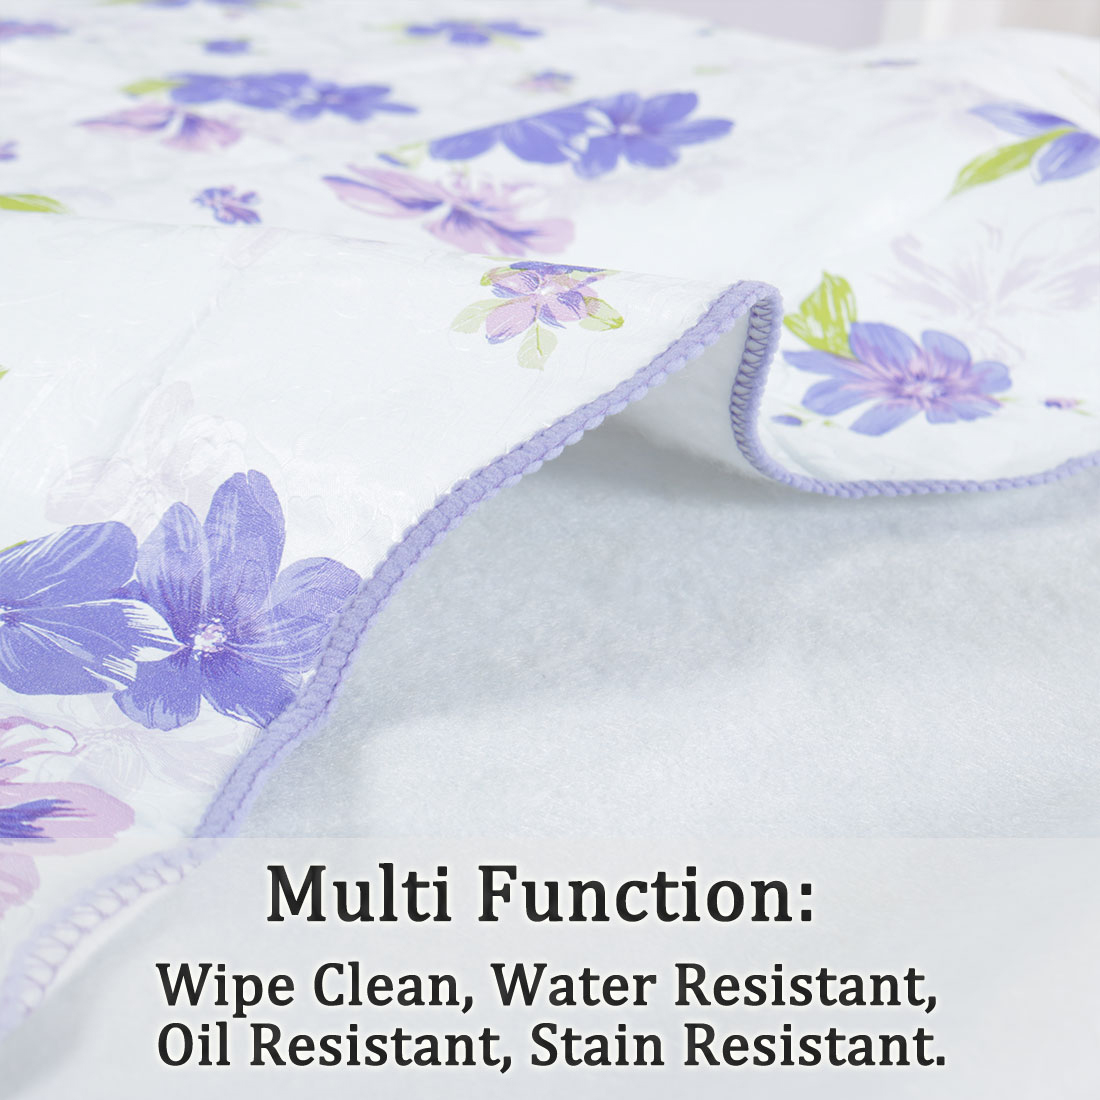 """Tablecloth PVC Oil Stain Resistant Wedding Camping Table Cloths 54"""" x 72"""",#9 - image 4 de 7"""